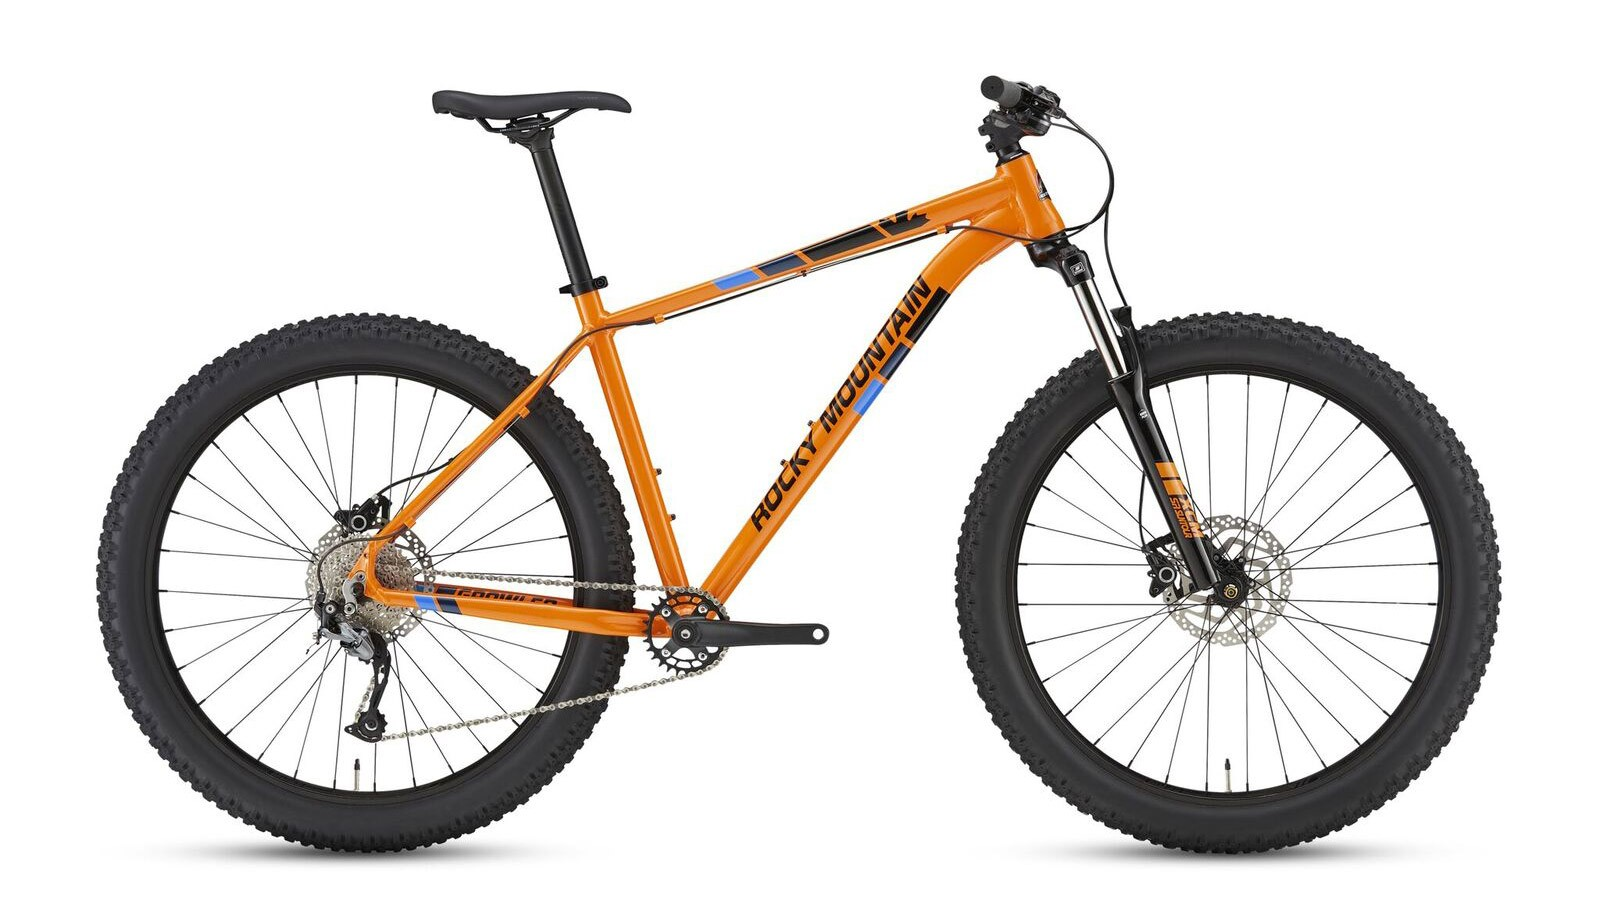 Rocky Mountain's Growler line-up features 26+ or 27.5+ tires depending on size